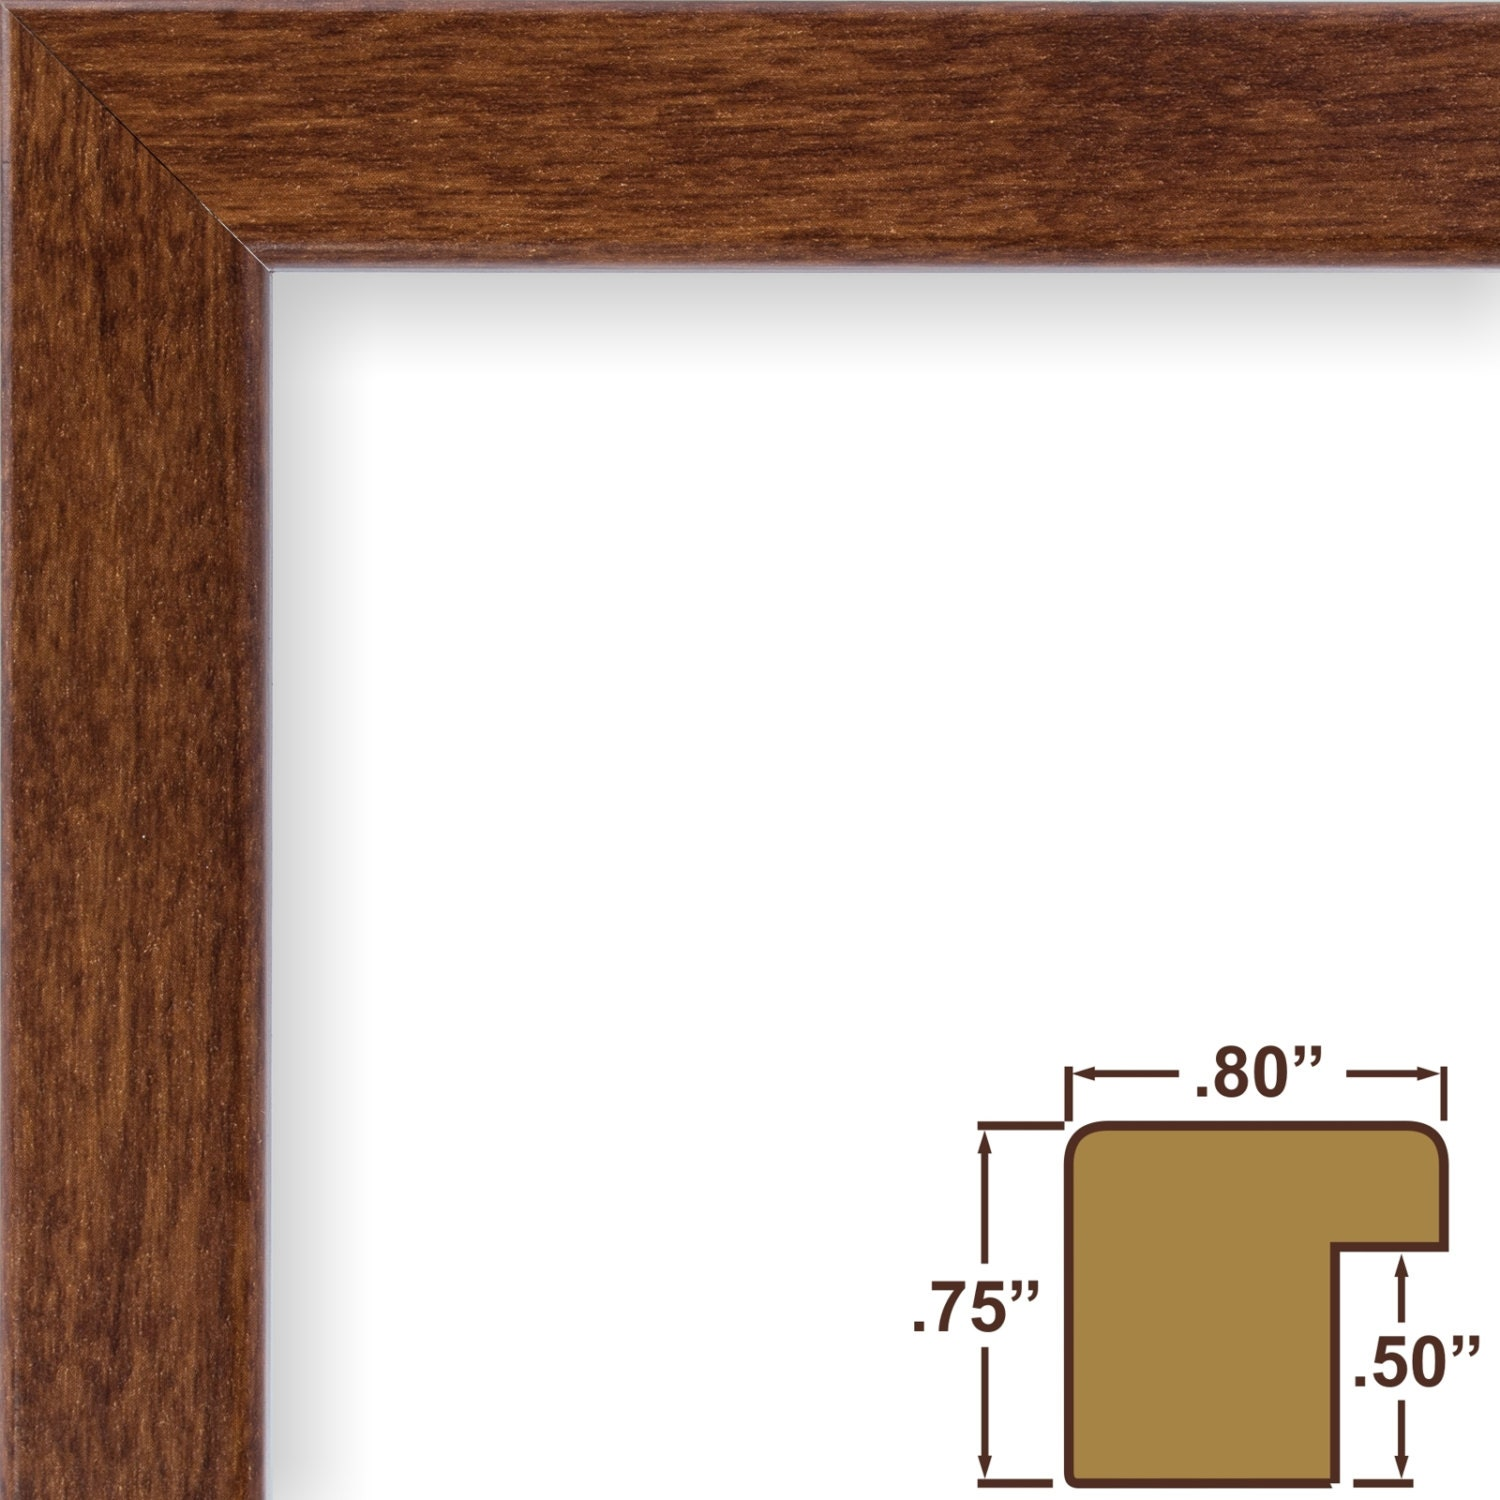 Craig frames 20x20 inch modern canadian walnut picture frame 2499 jeuxipadfo Image collections